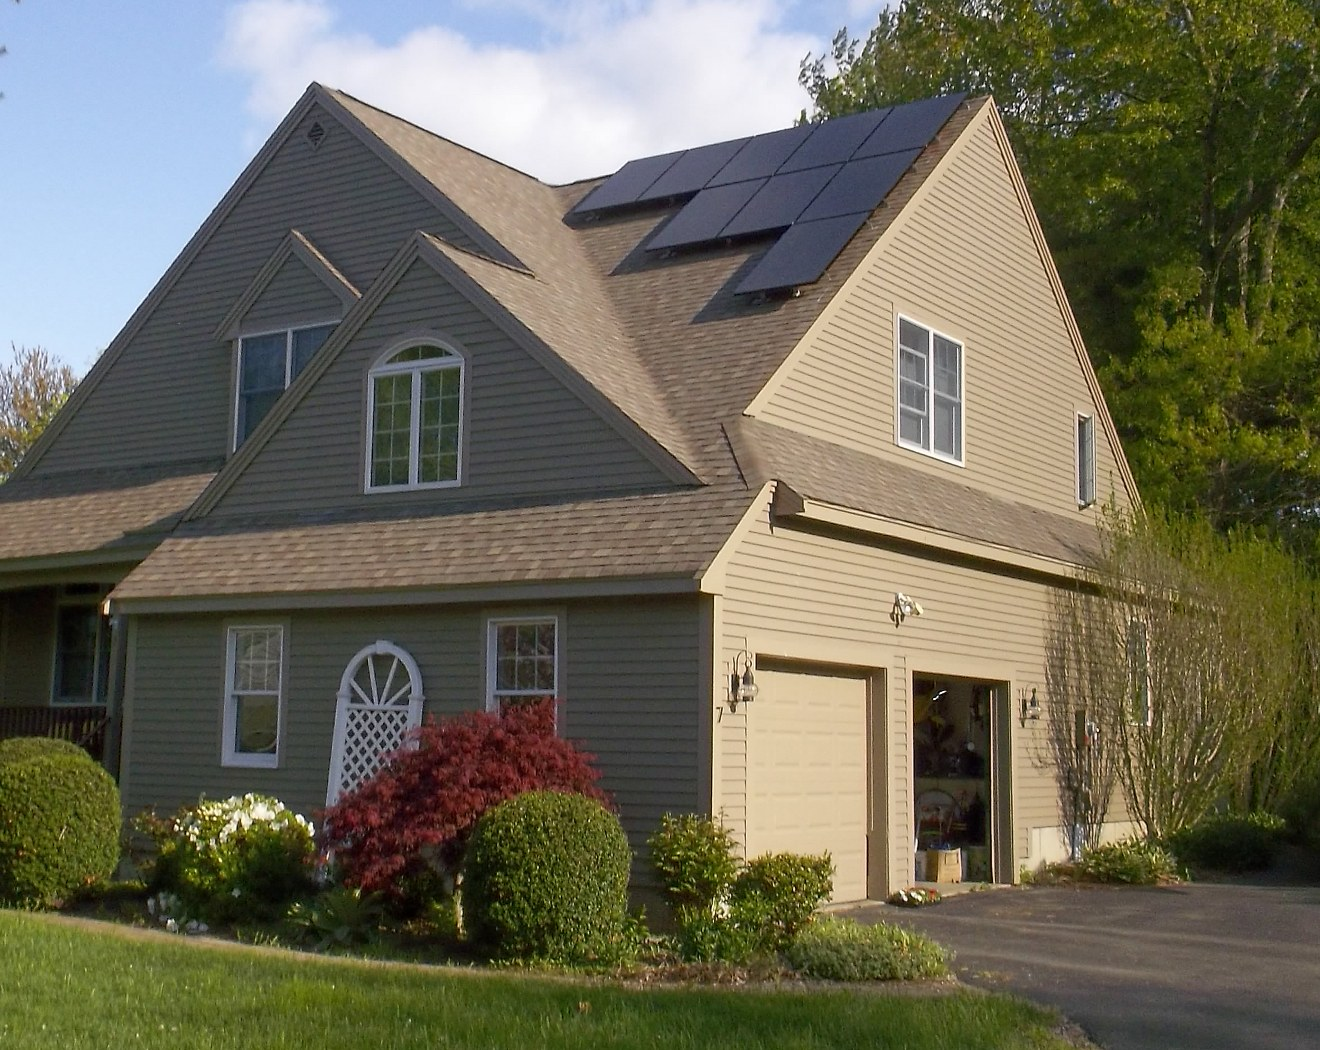 Good Bad And Ugly Solar Installations The Energy Miser Wiring House To Detached Garage Along With Electrical Diagram Acton S C 1320x1050